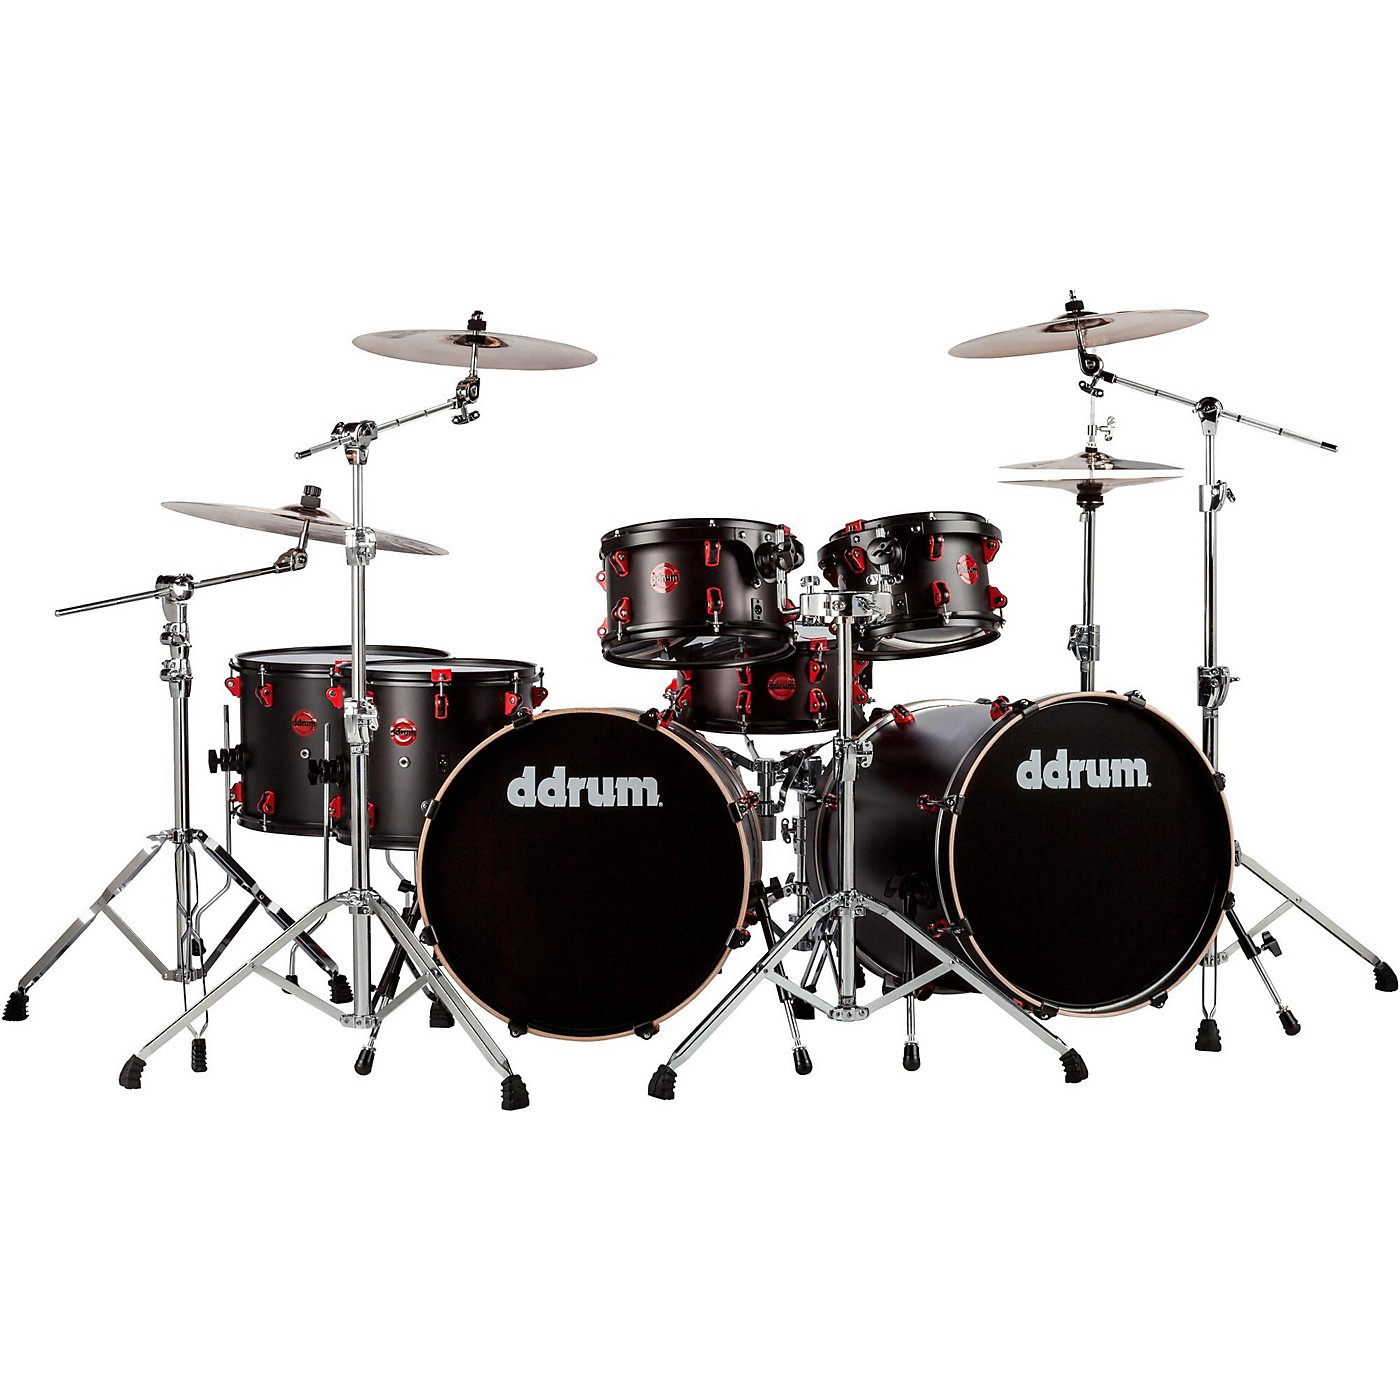 ddrum Hybrid Acoustic/Electric 7-piece Double Bass Shell Pack thumbnail